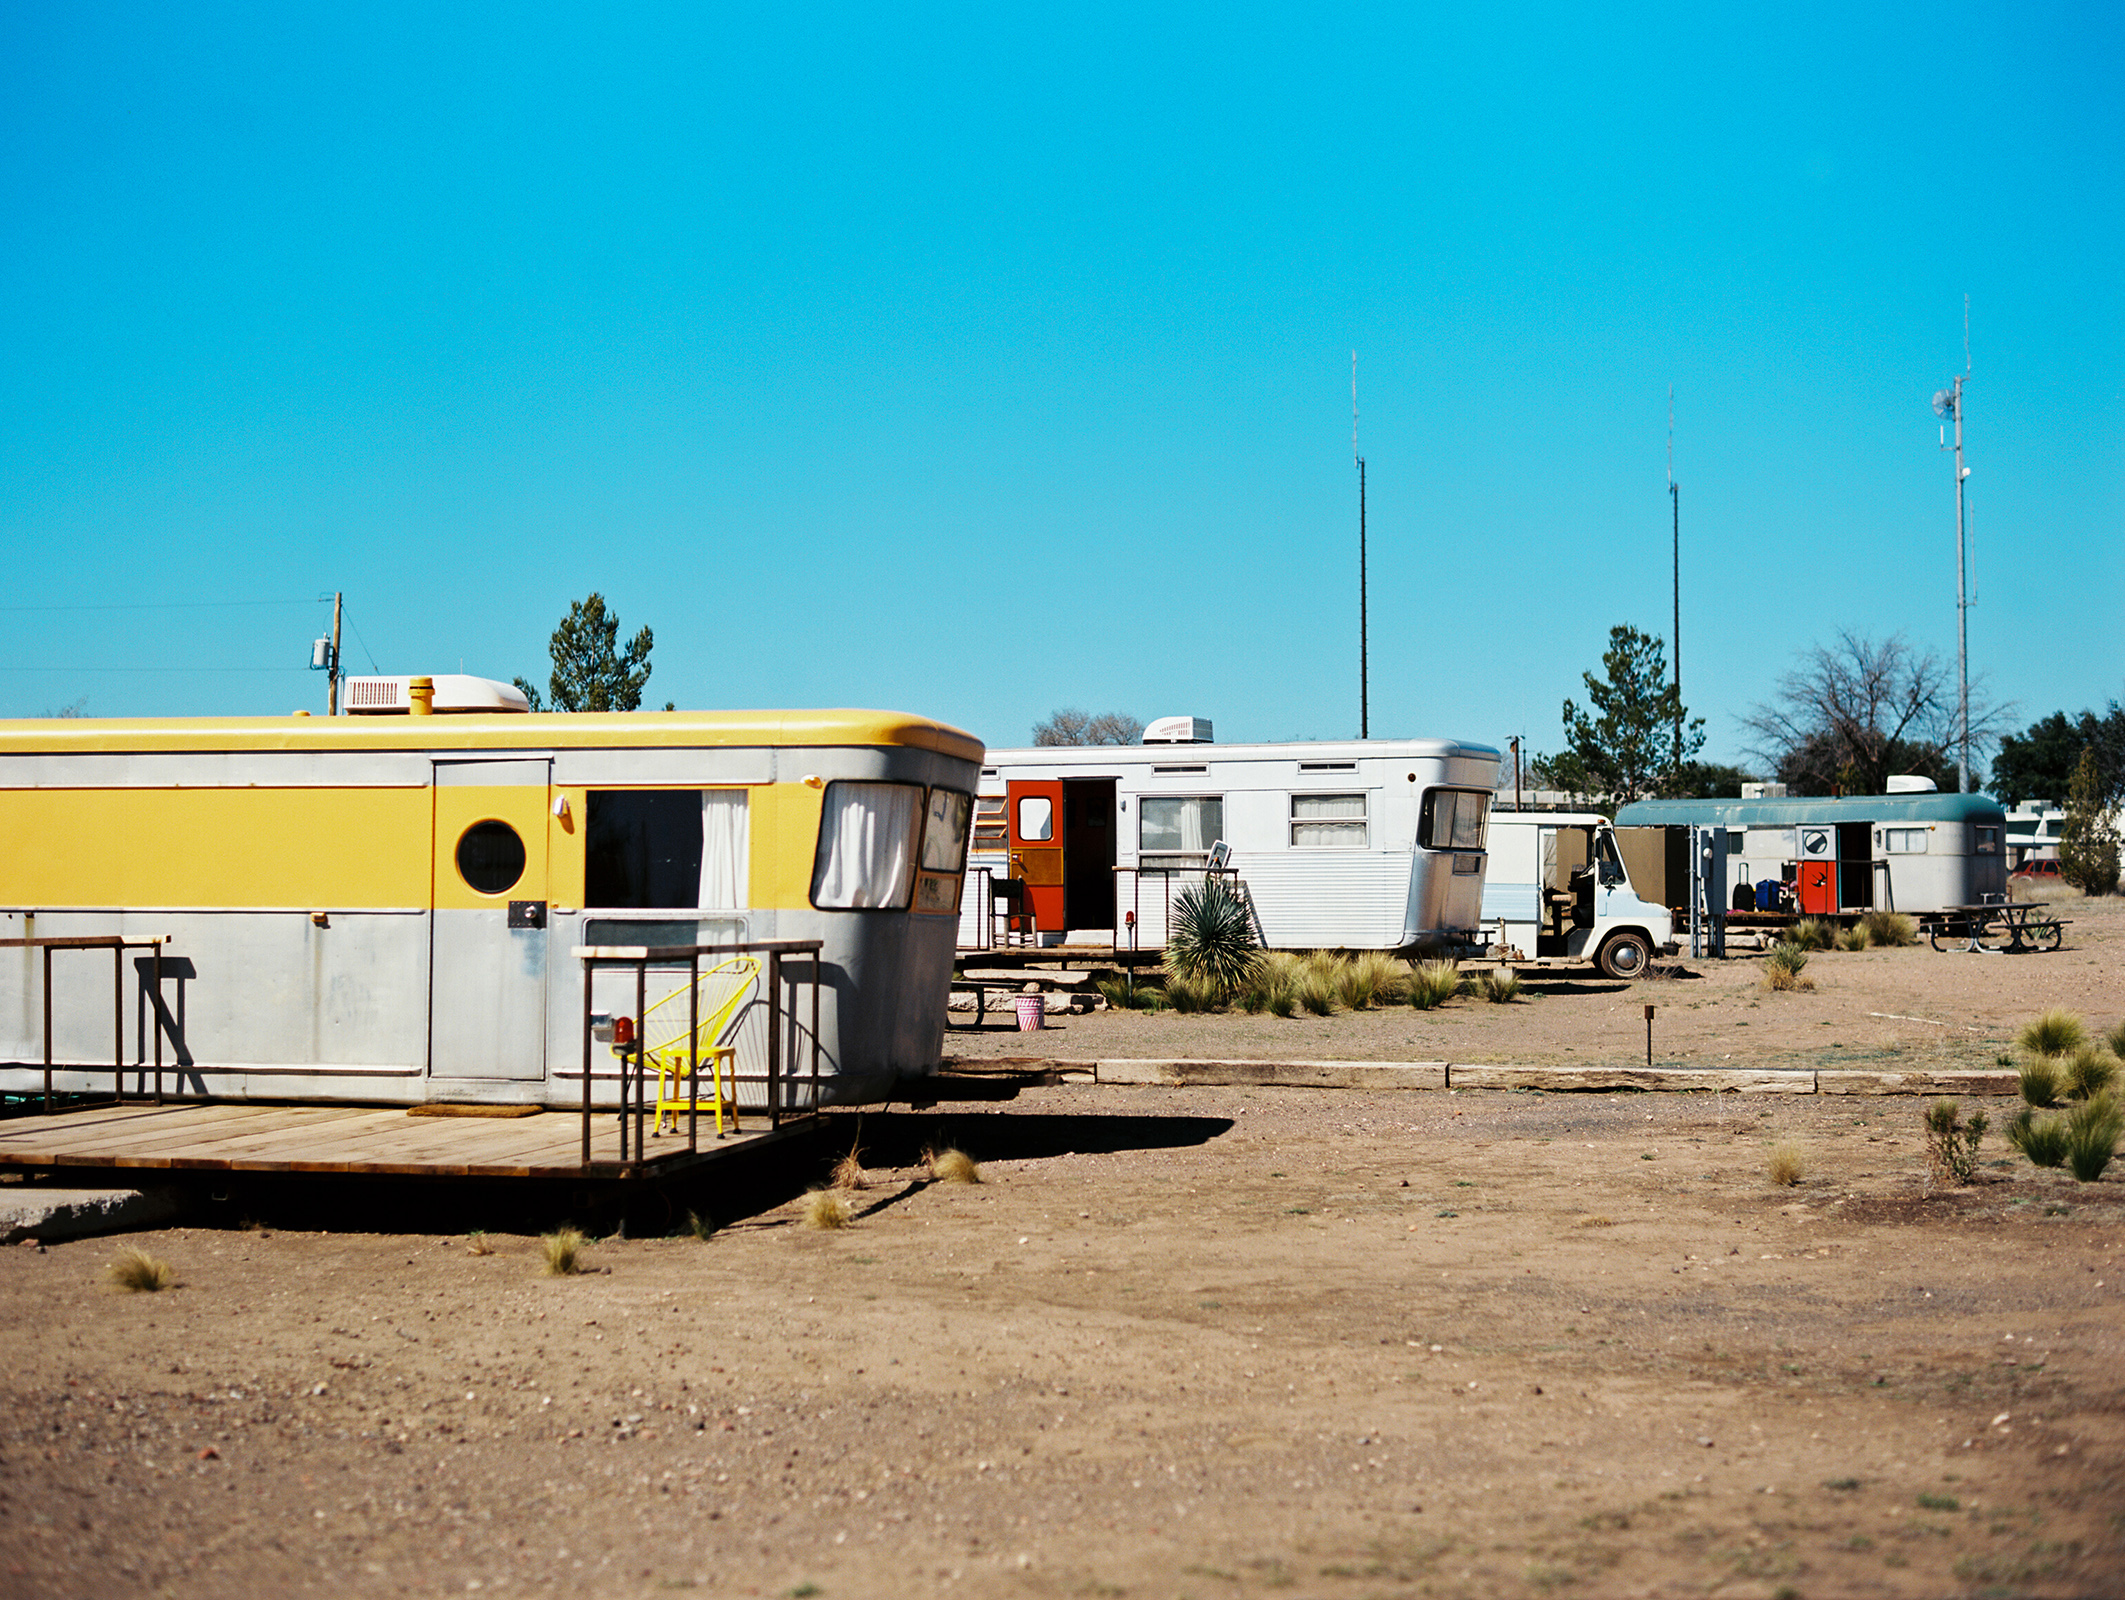 marfa_texas_film_travel_photography_07.jpg